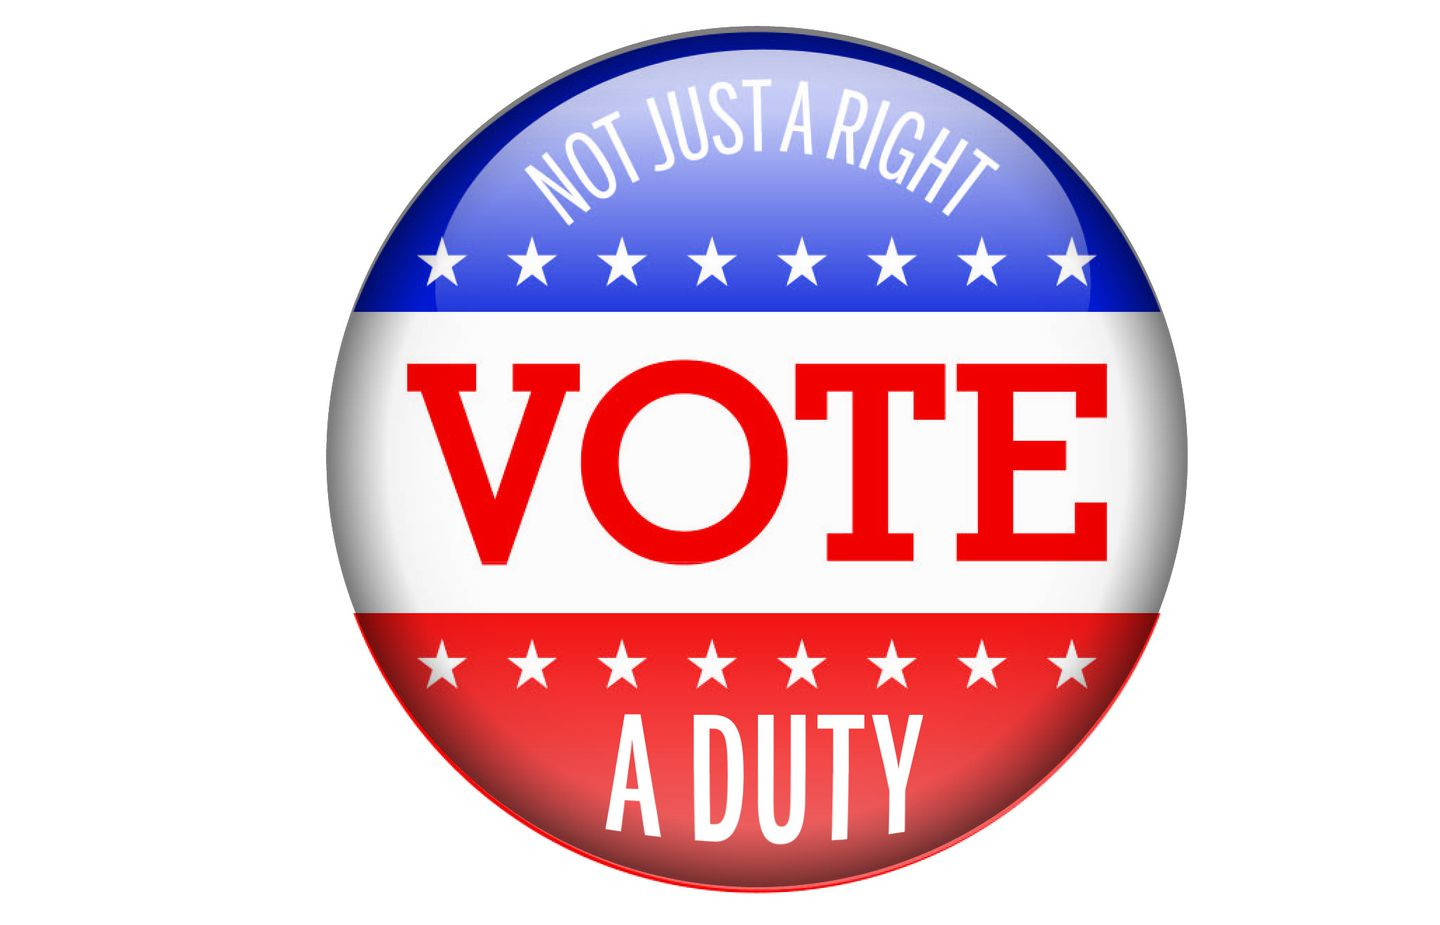 Voting: A right or a duty? - The Boston Globe